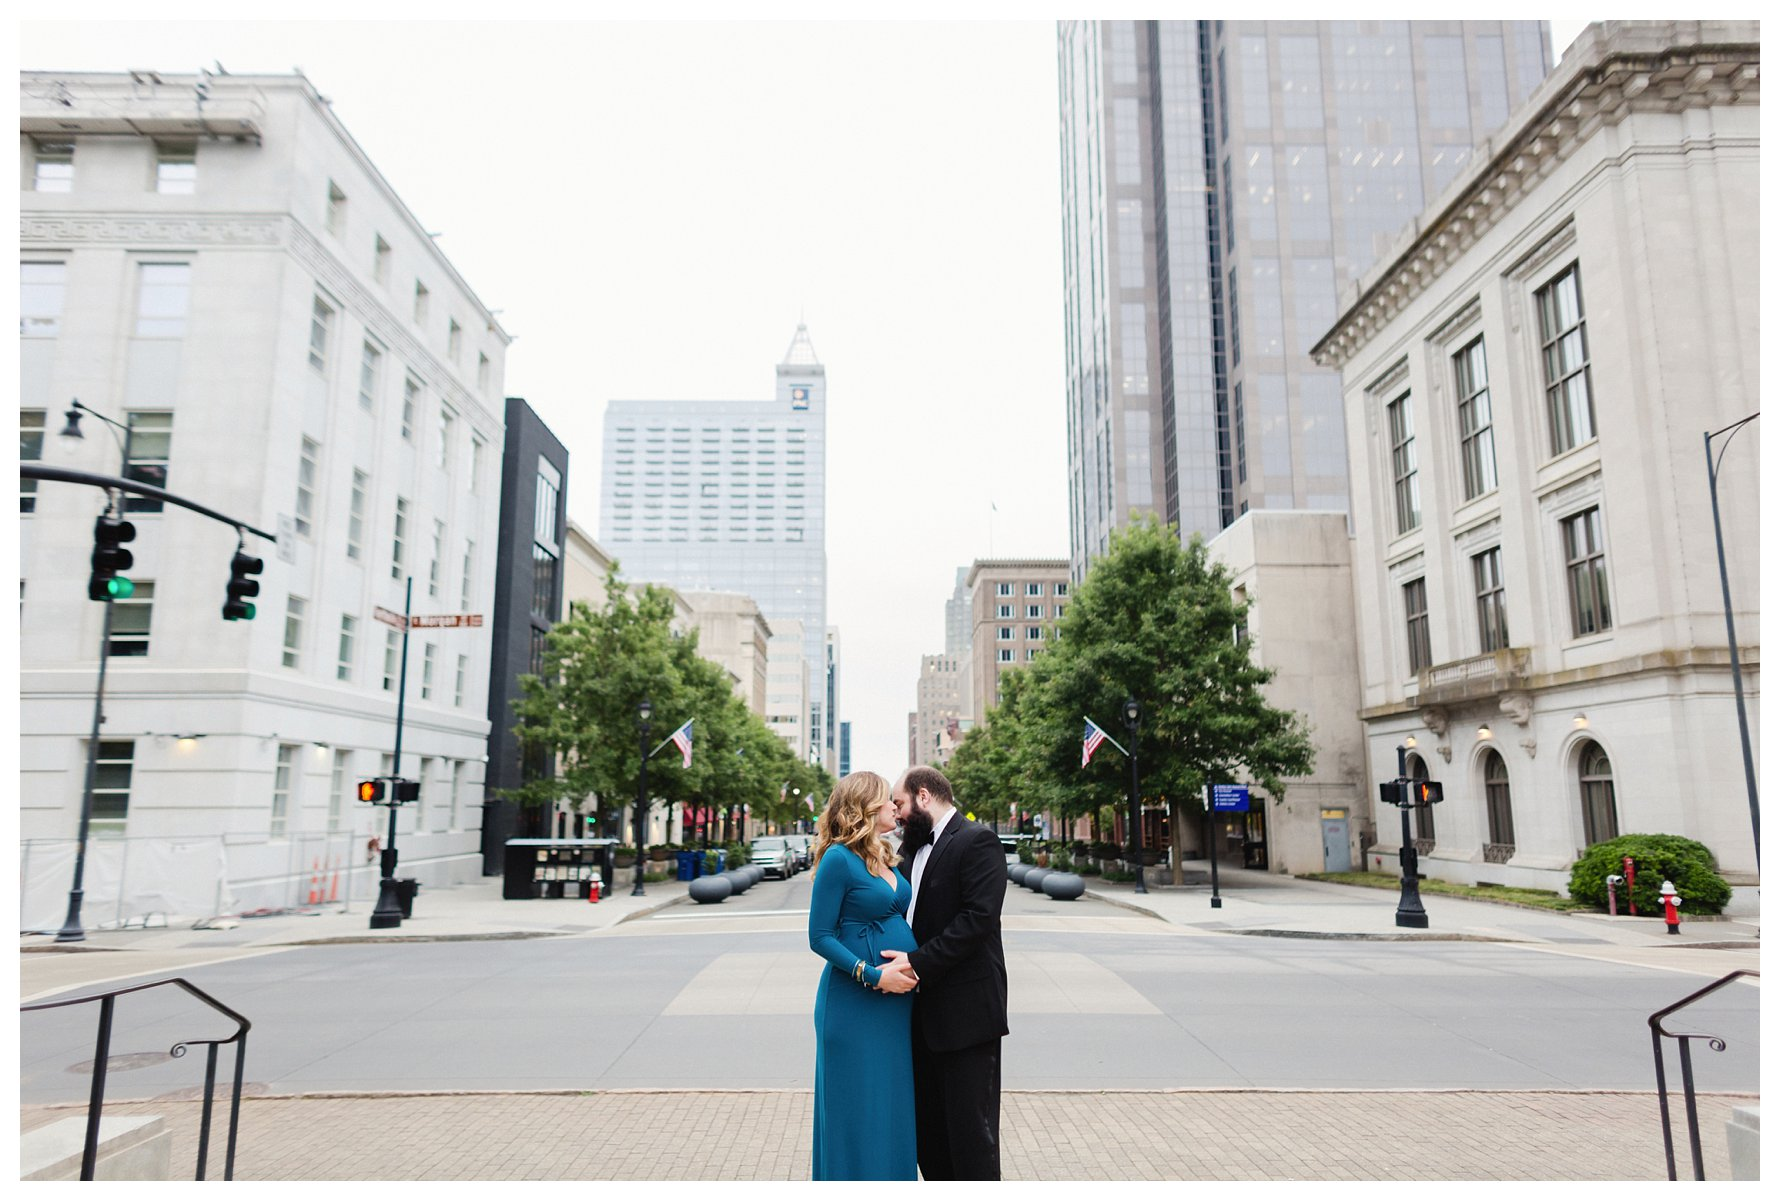 Fayetteville Street, Raleigh, NC Maternity Photography